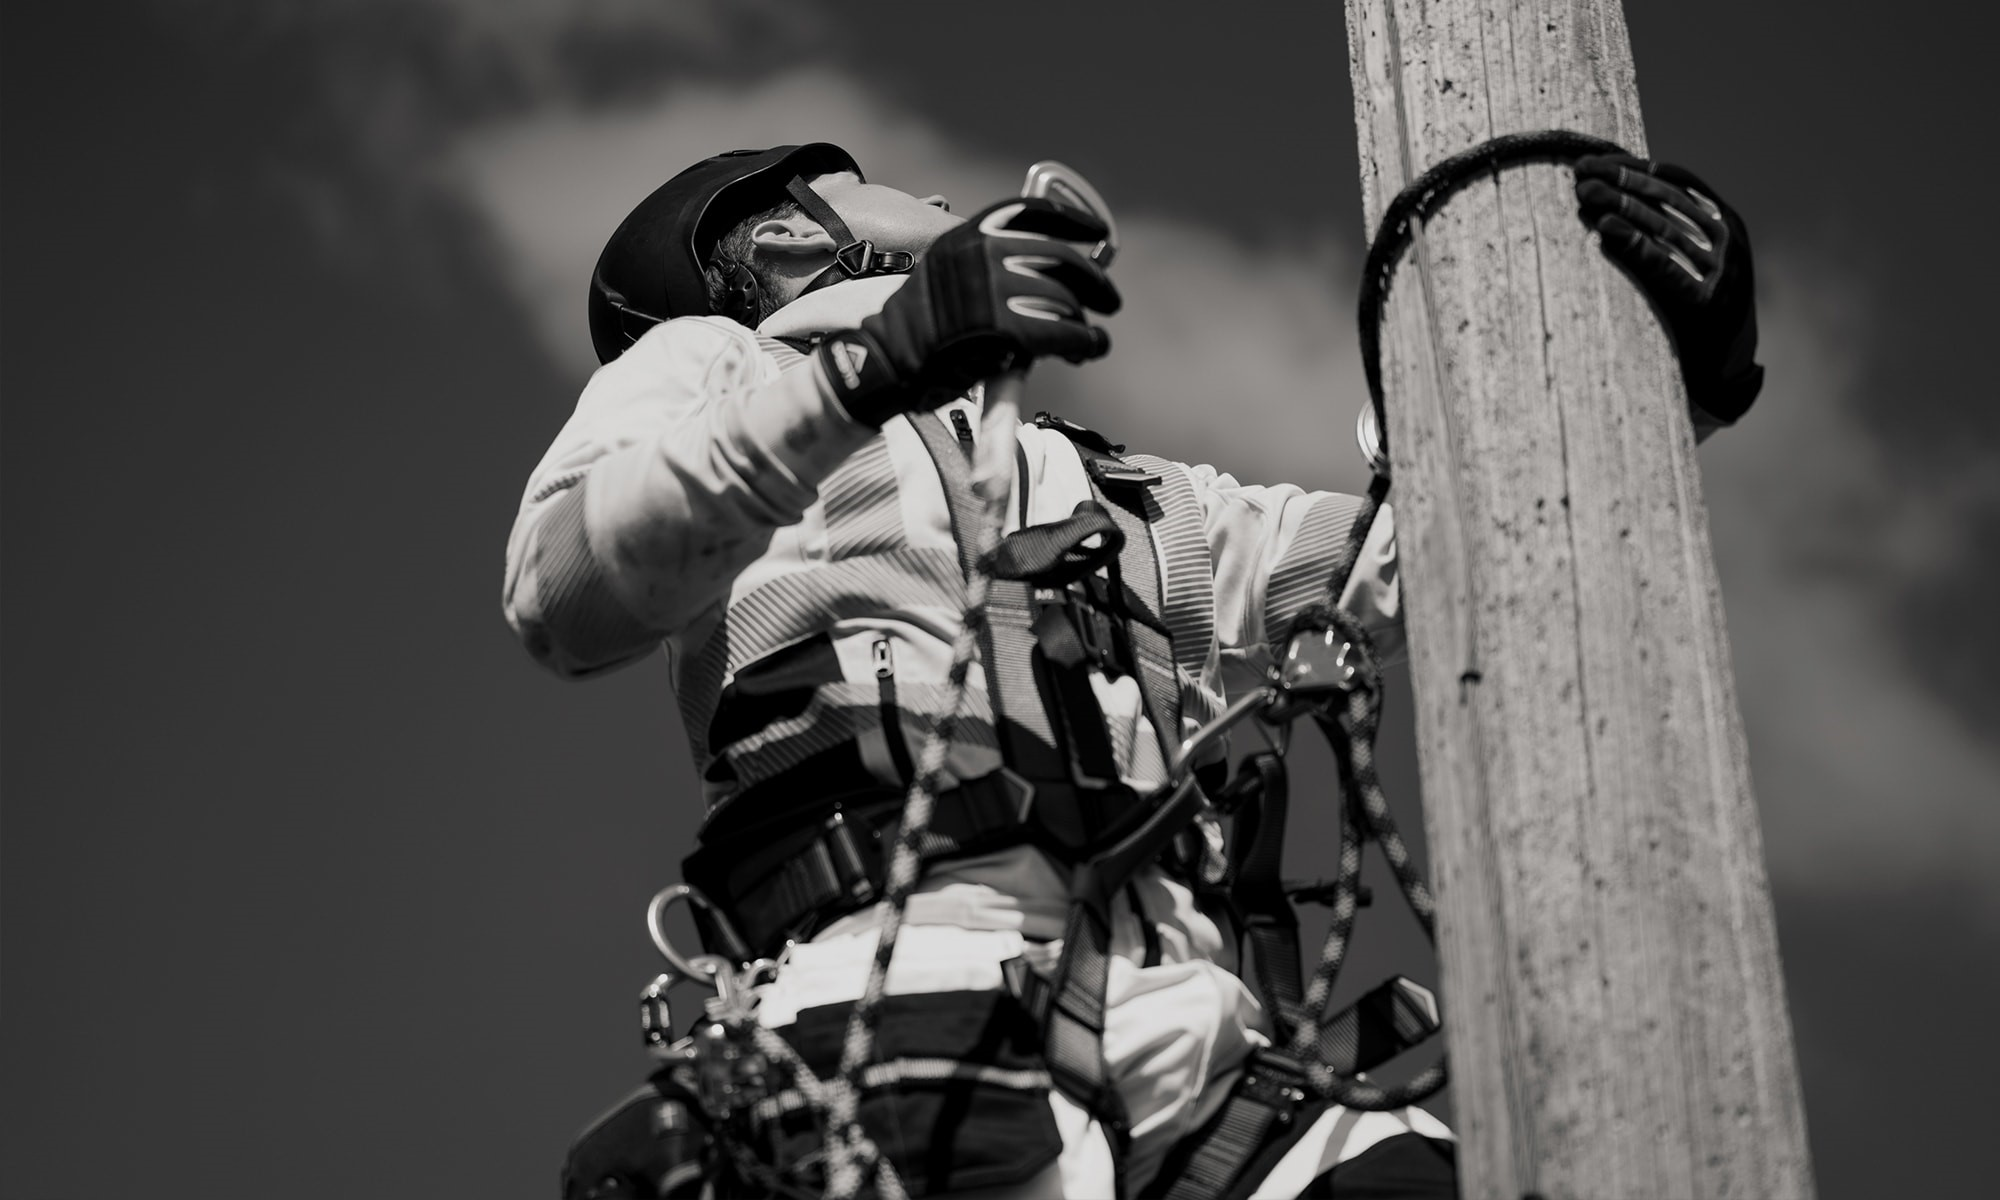 height worker climbing a pole